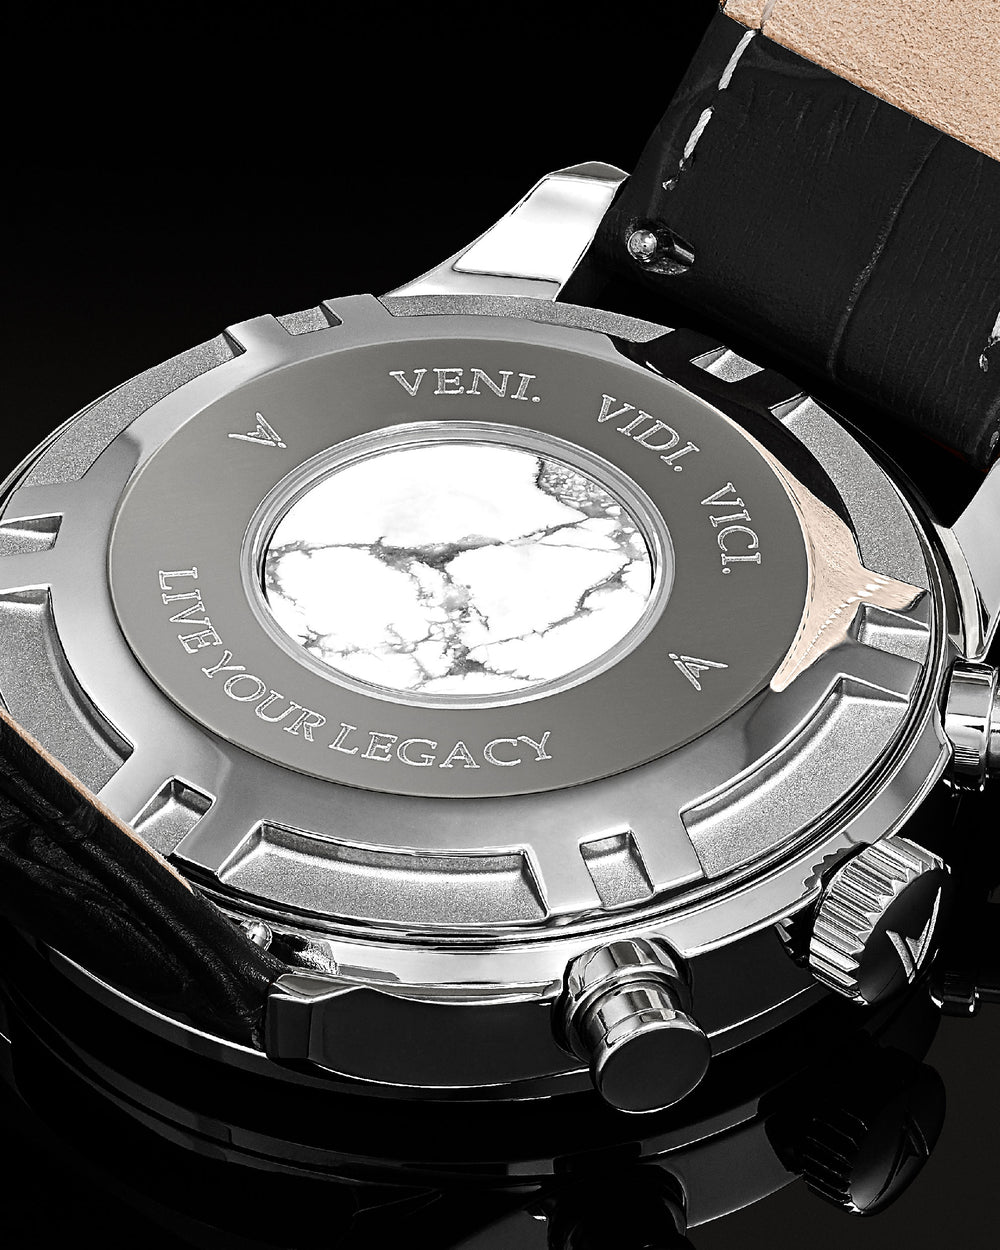 Chrono S 40mm Italian Marble and 316L Stainless Steel Caseback with Veni Vidi Vici Live Your Legacy Engraving